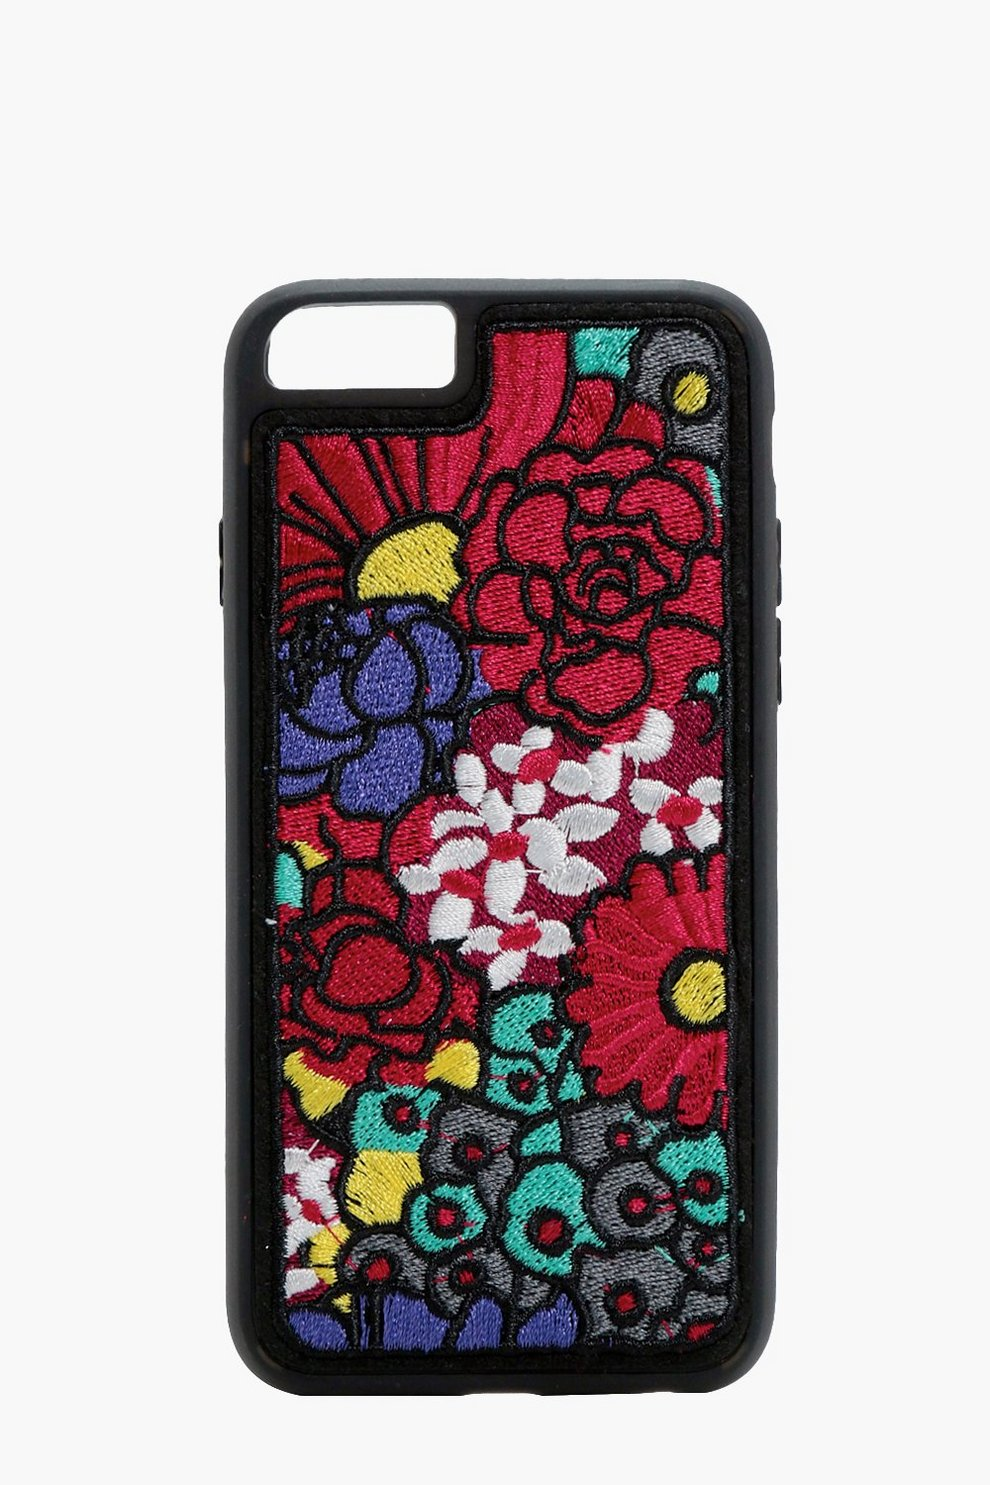 99p iphone 8 case